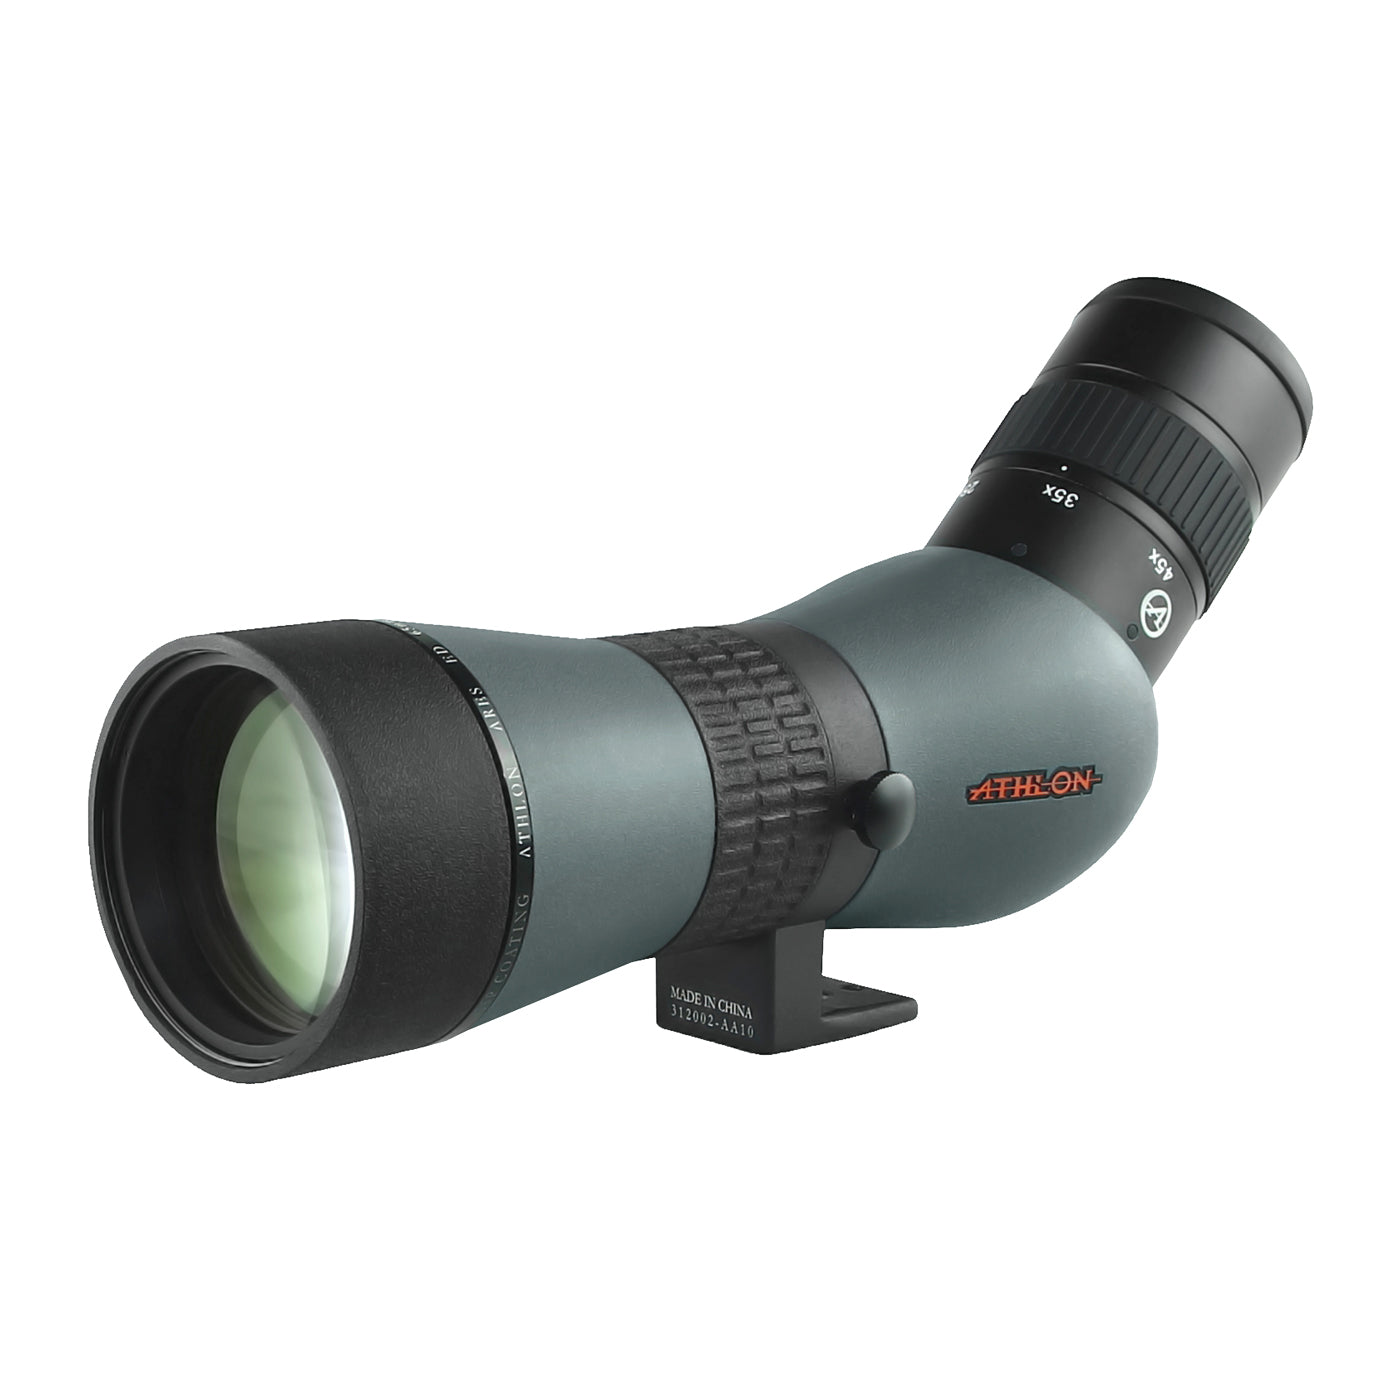 Athlon Ares 15-45x65mm Spotting Scope